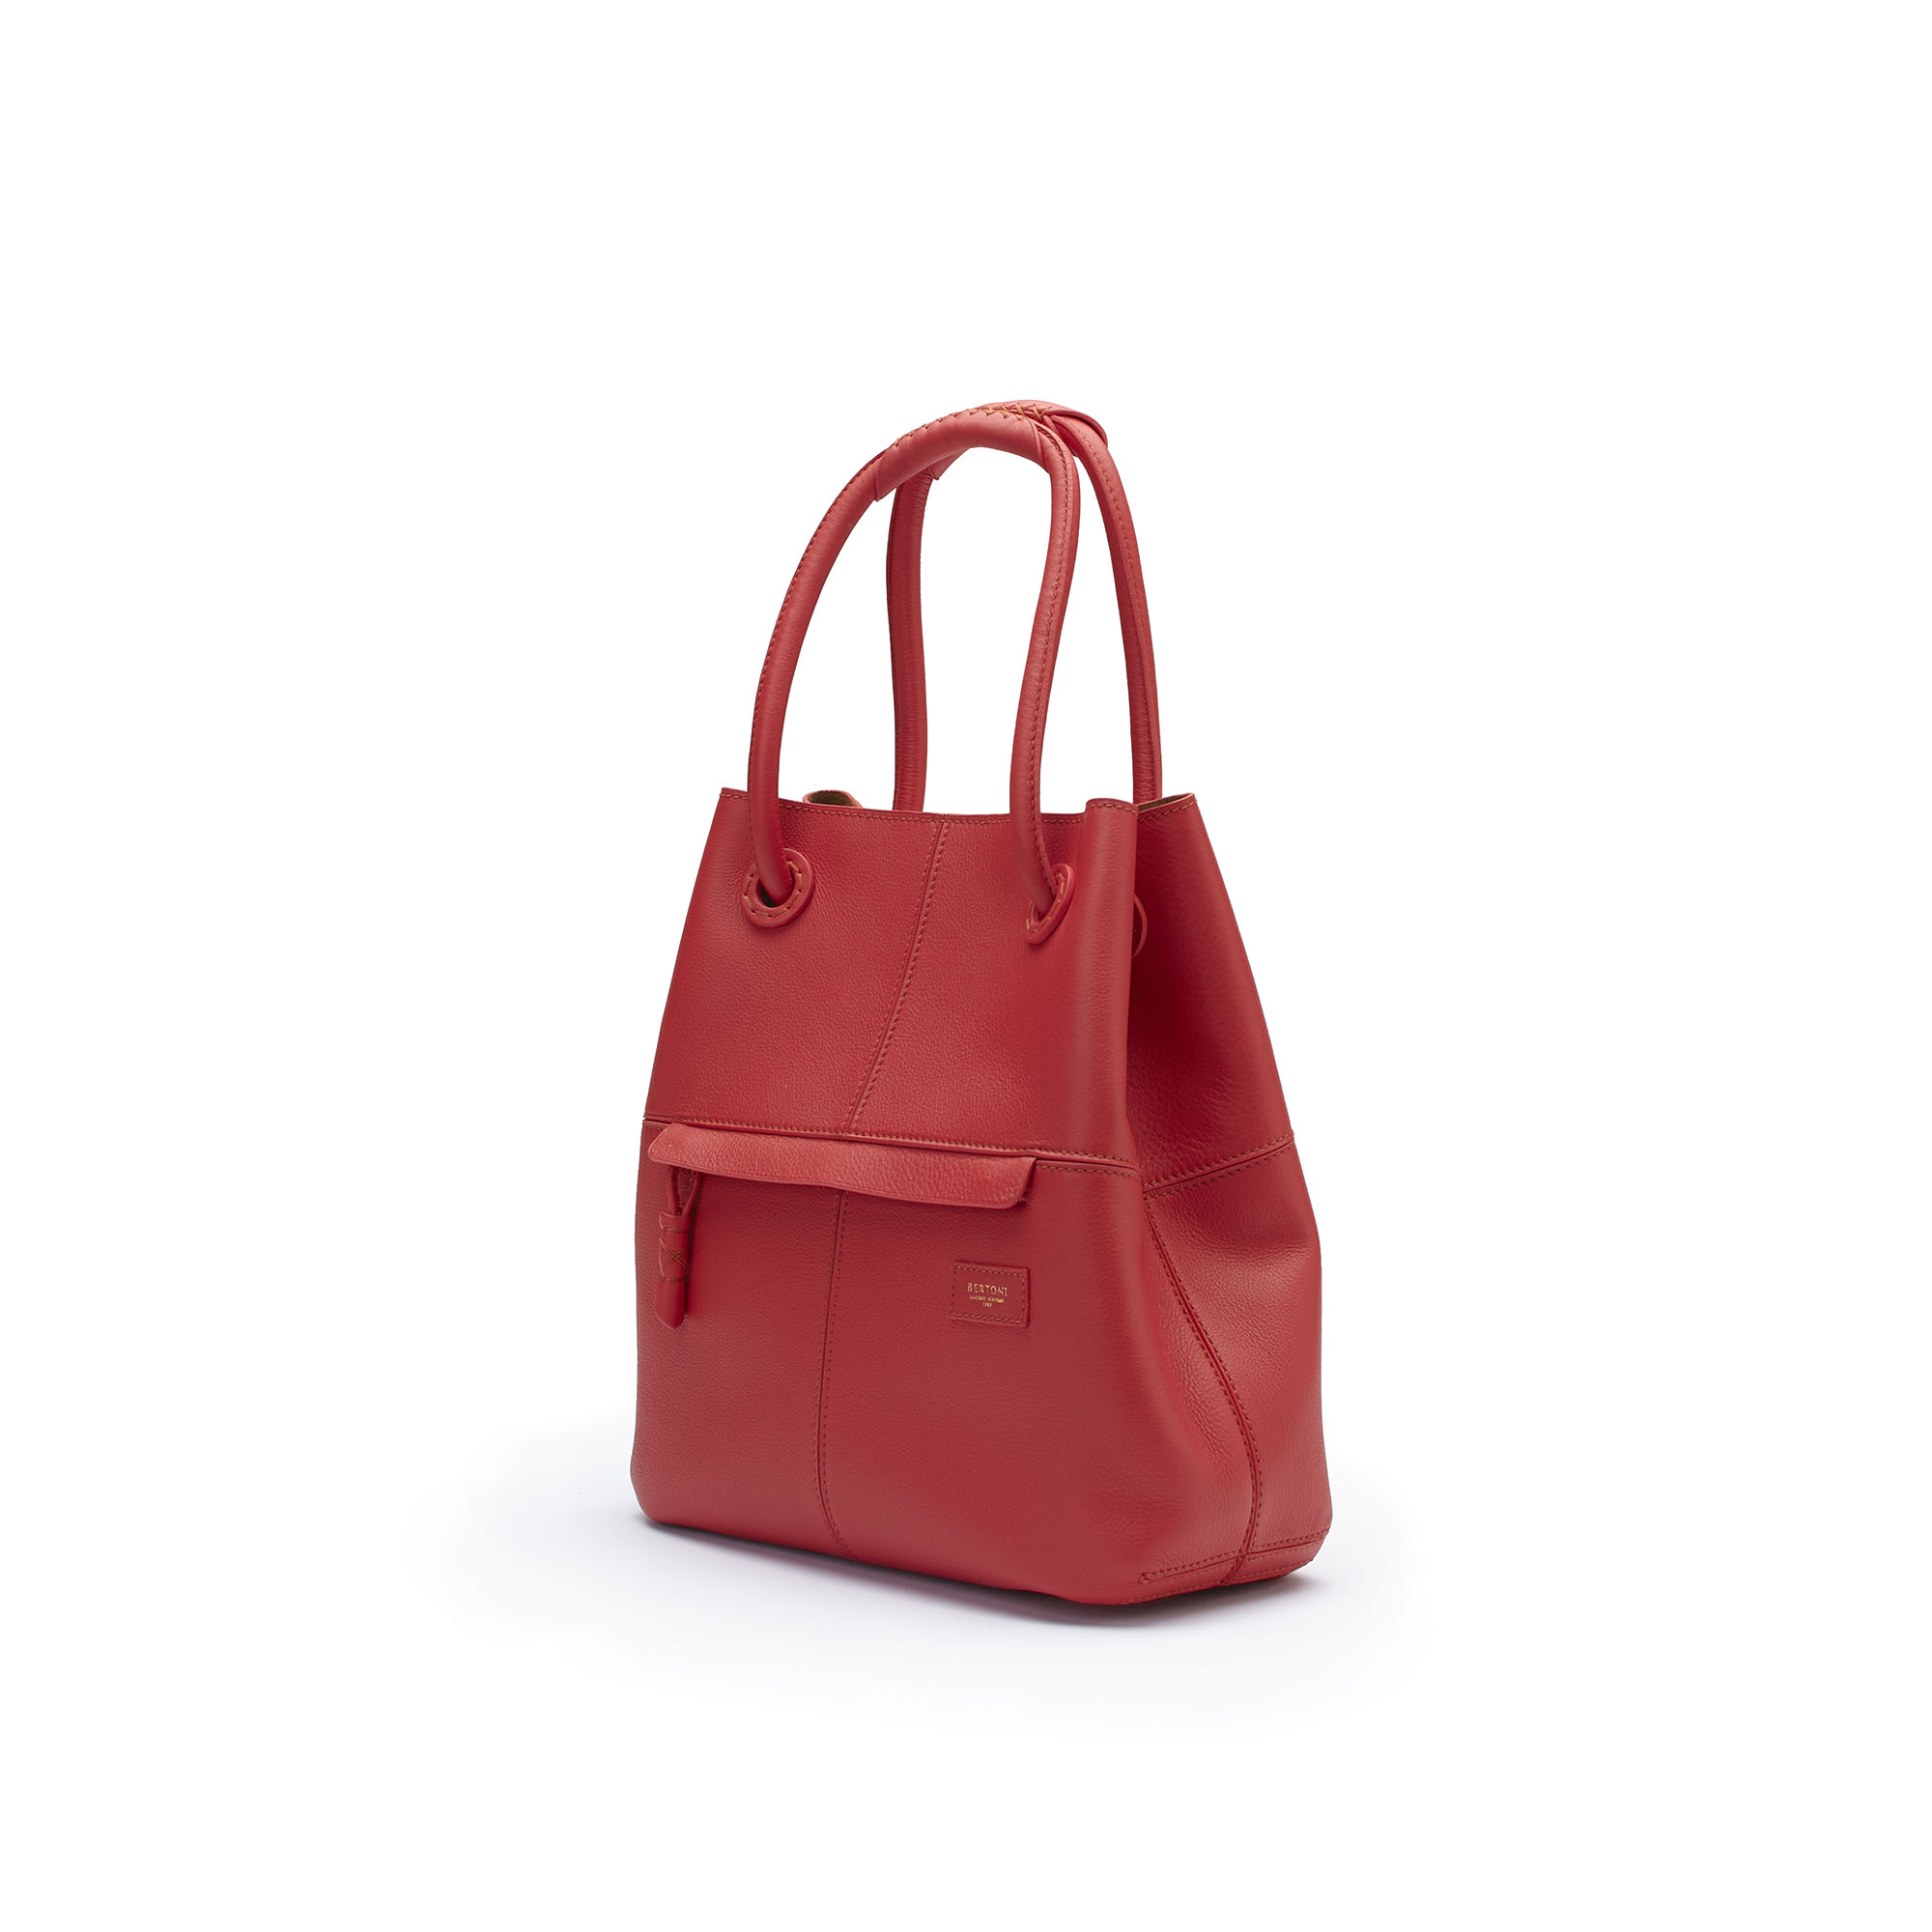 The red soft calf Satchel bag by Bertoni 1949 02